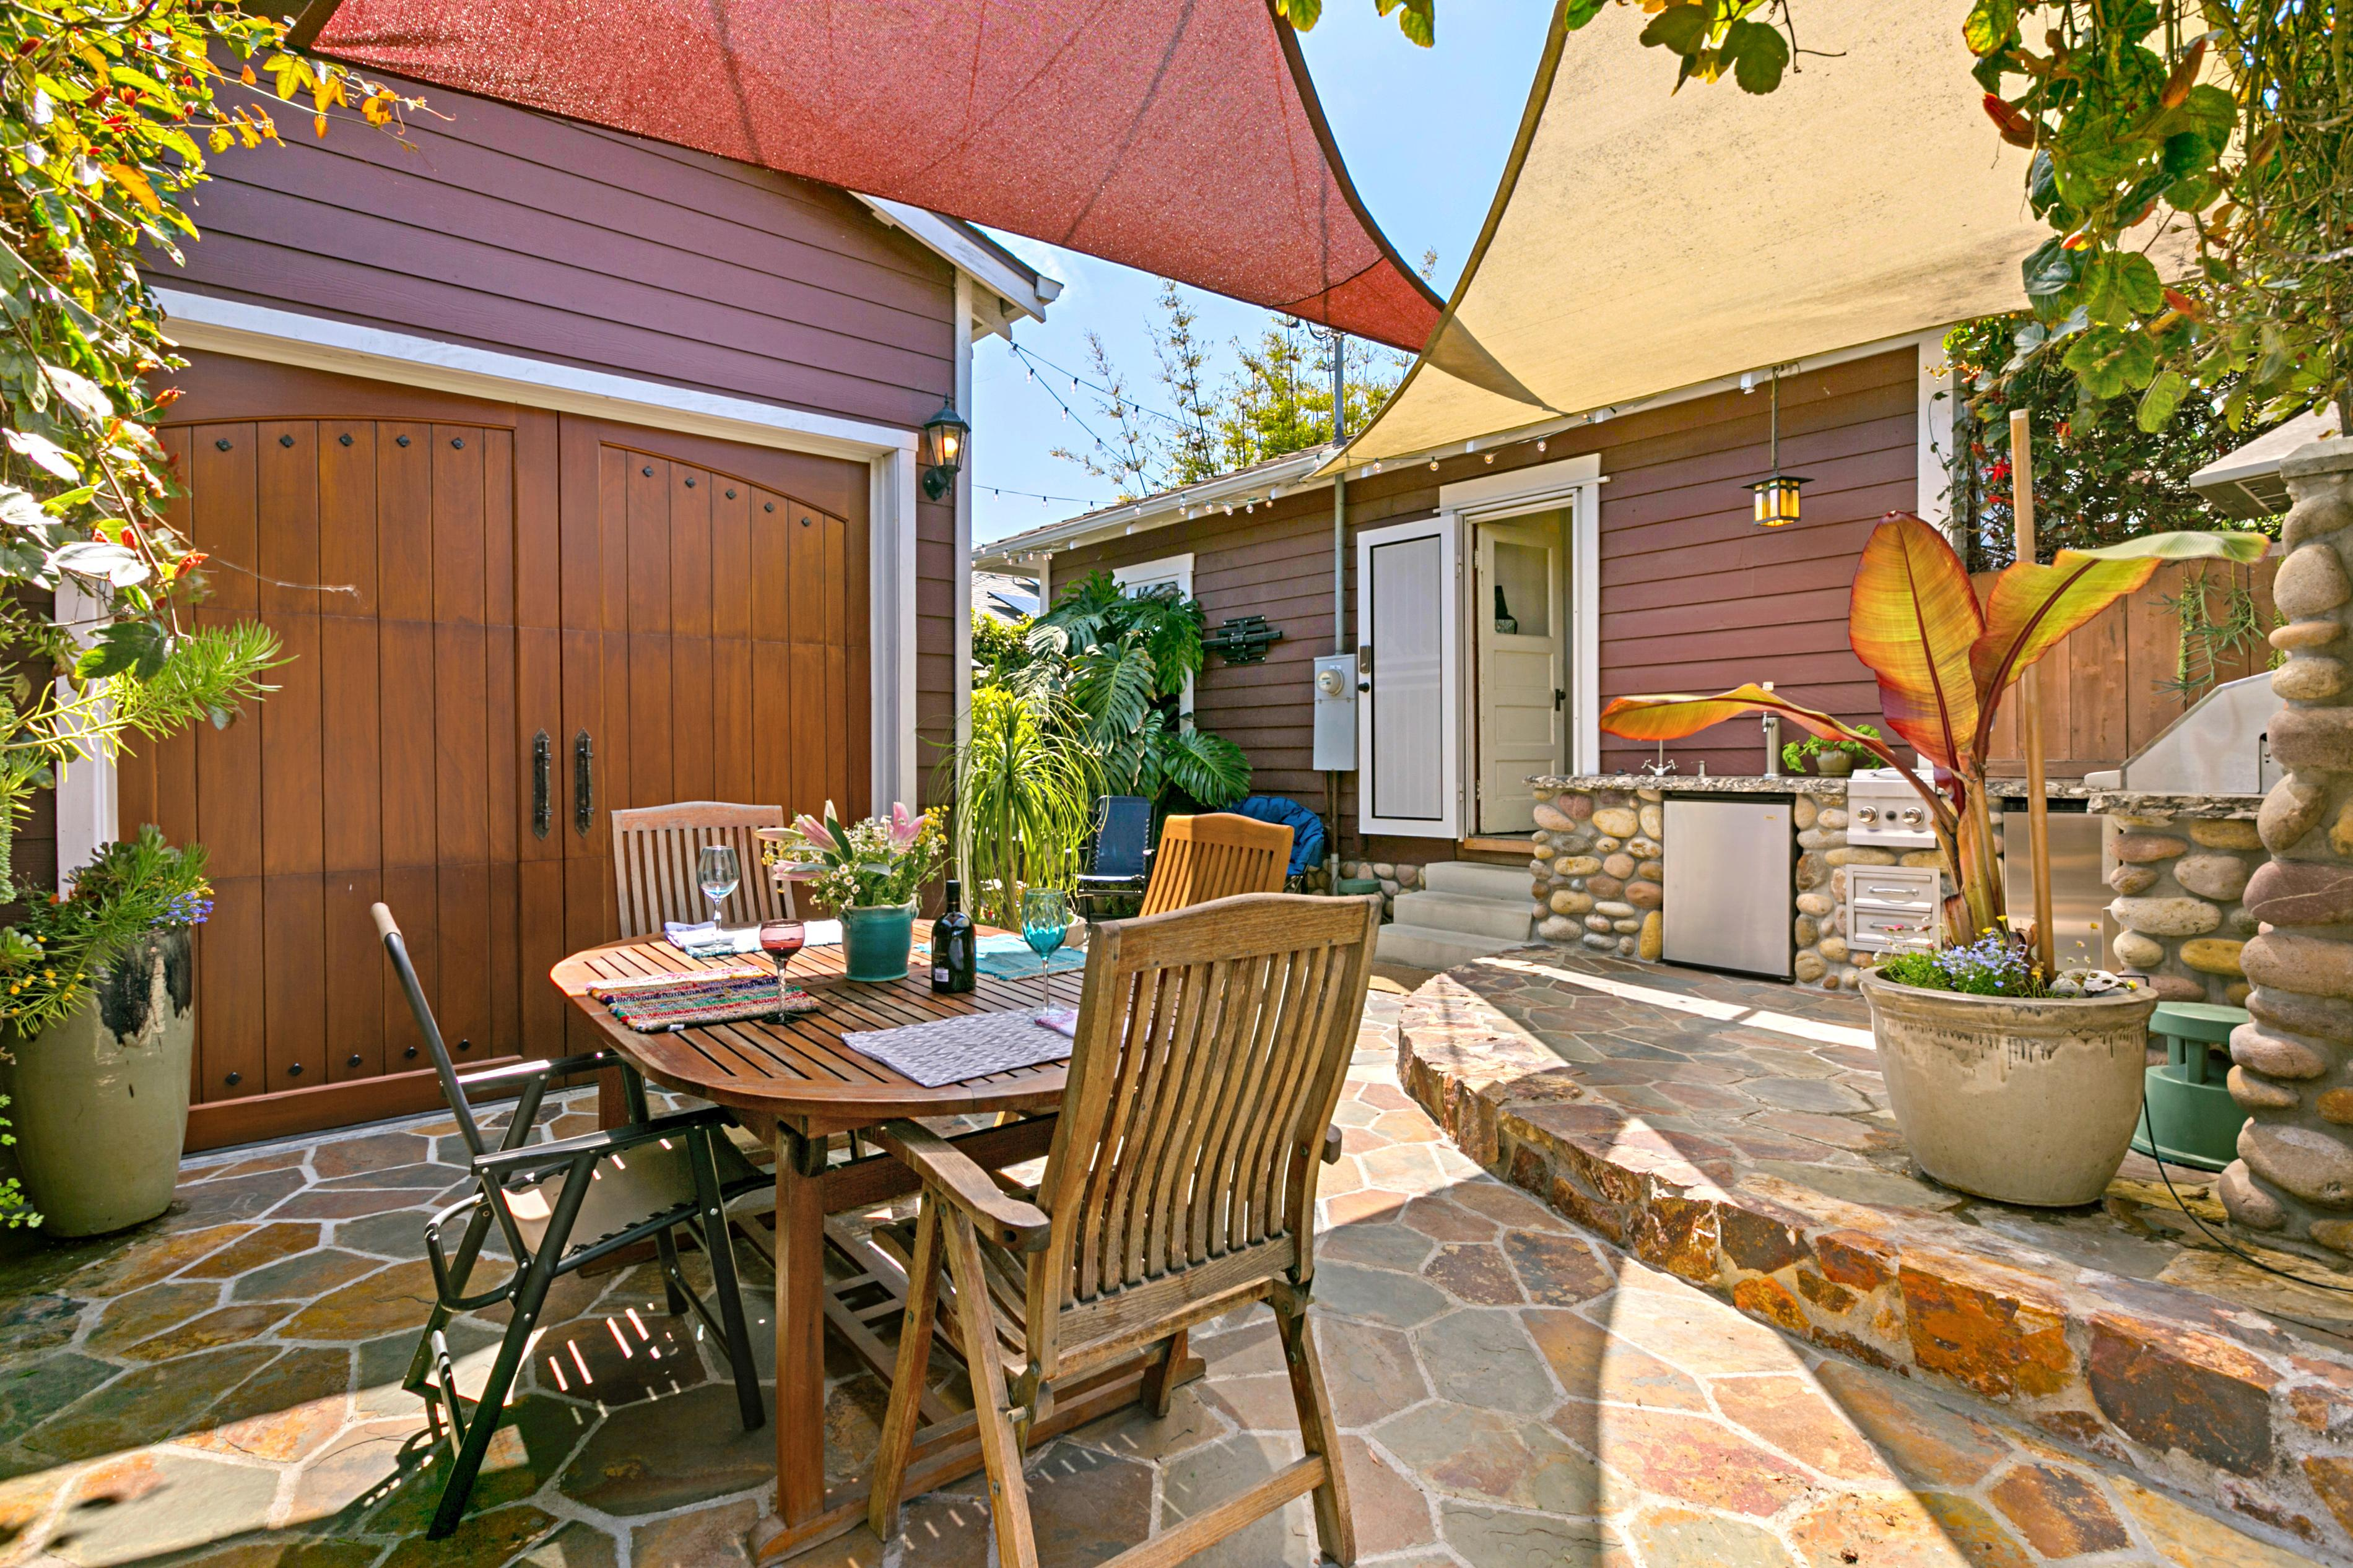 Property Image 1 - Eclectic Craftsman Bungalow with Outdoor Kitchen